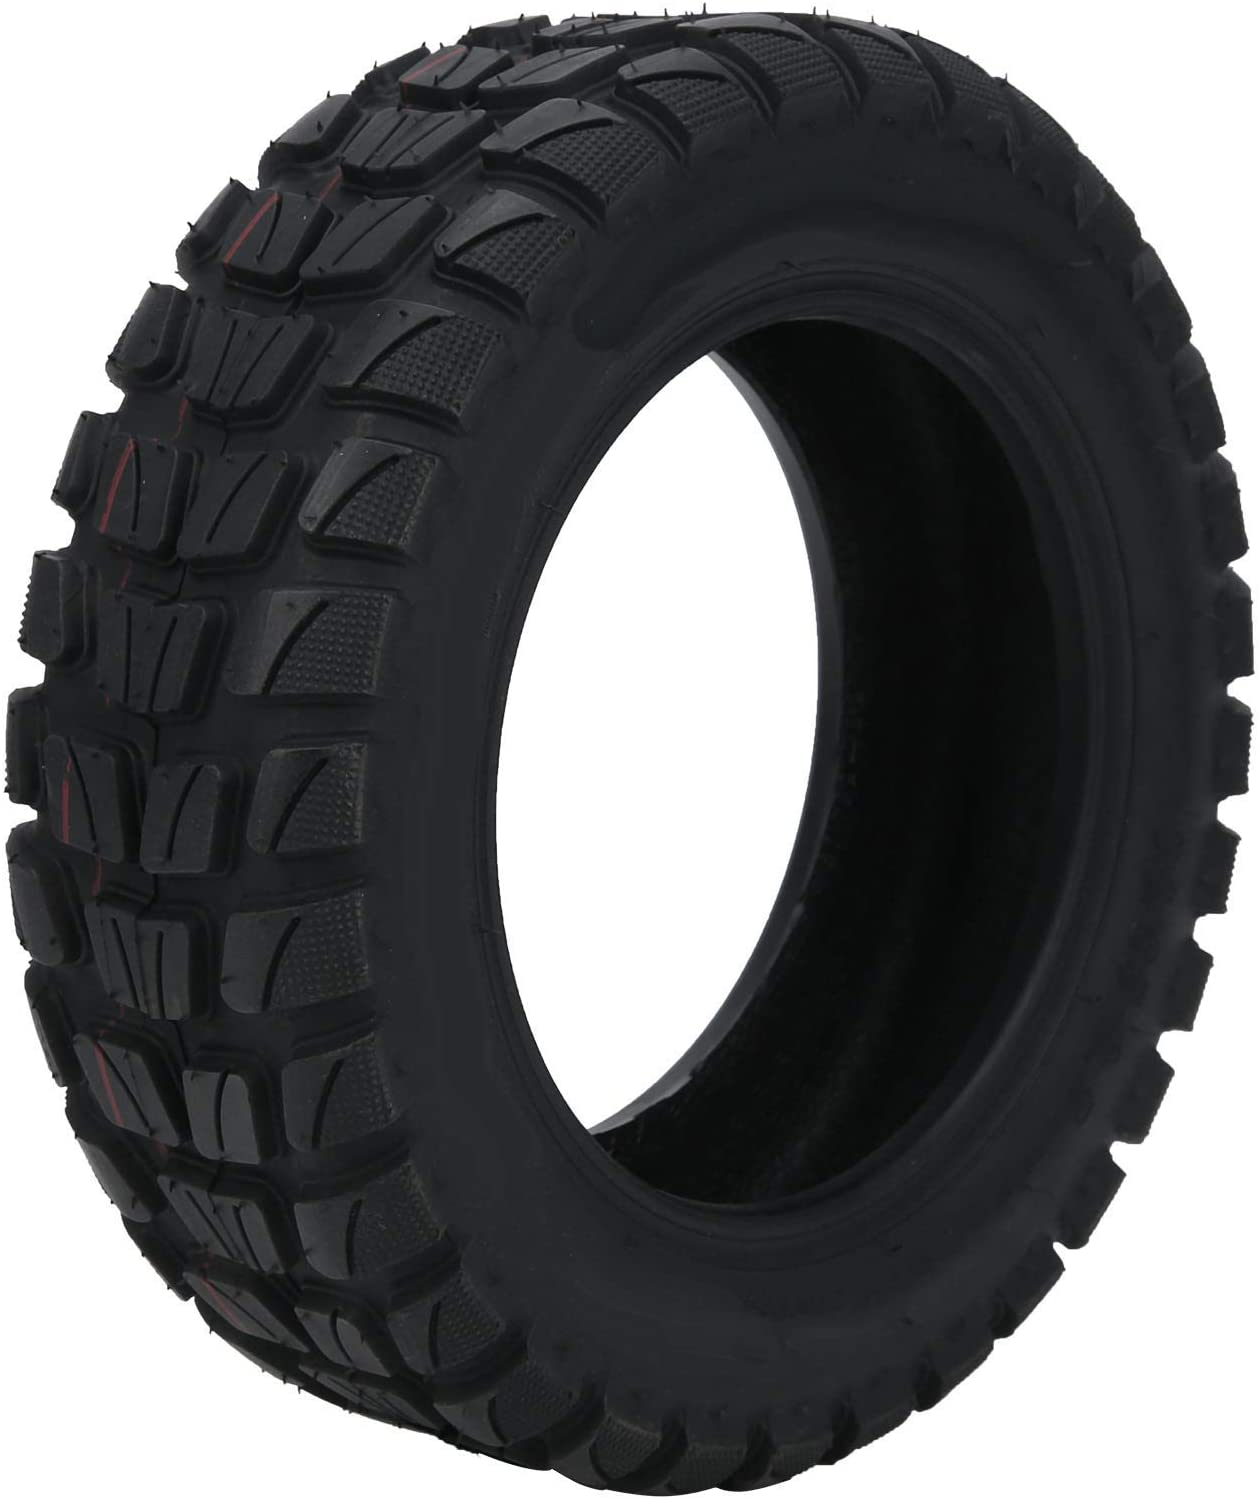 11in Electric Scooter Tubeless 55% OFF 2021new shipping free Wear?Resistant Tire E- Thickened